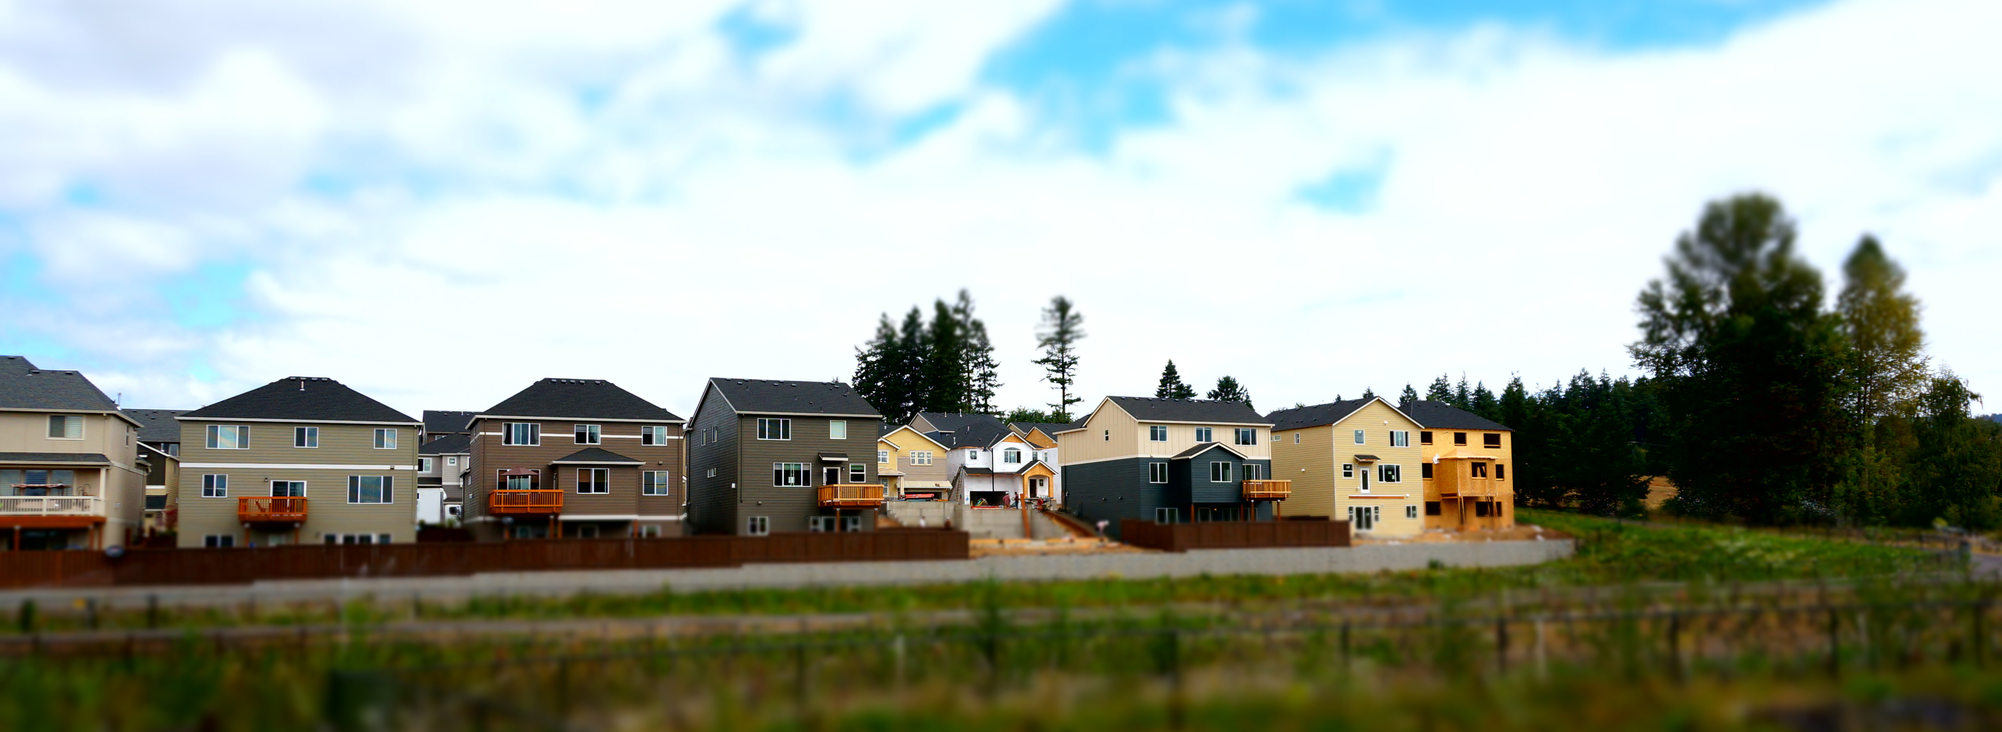 New houses beside a wetland wide